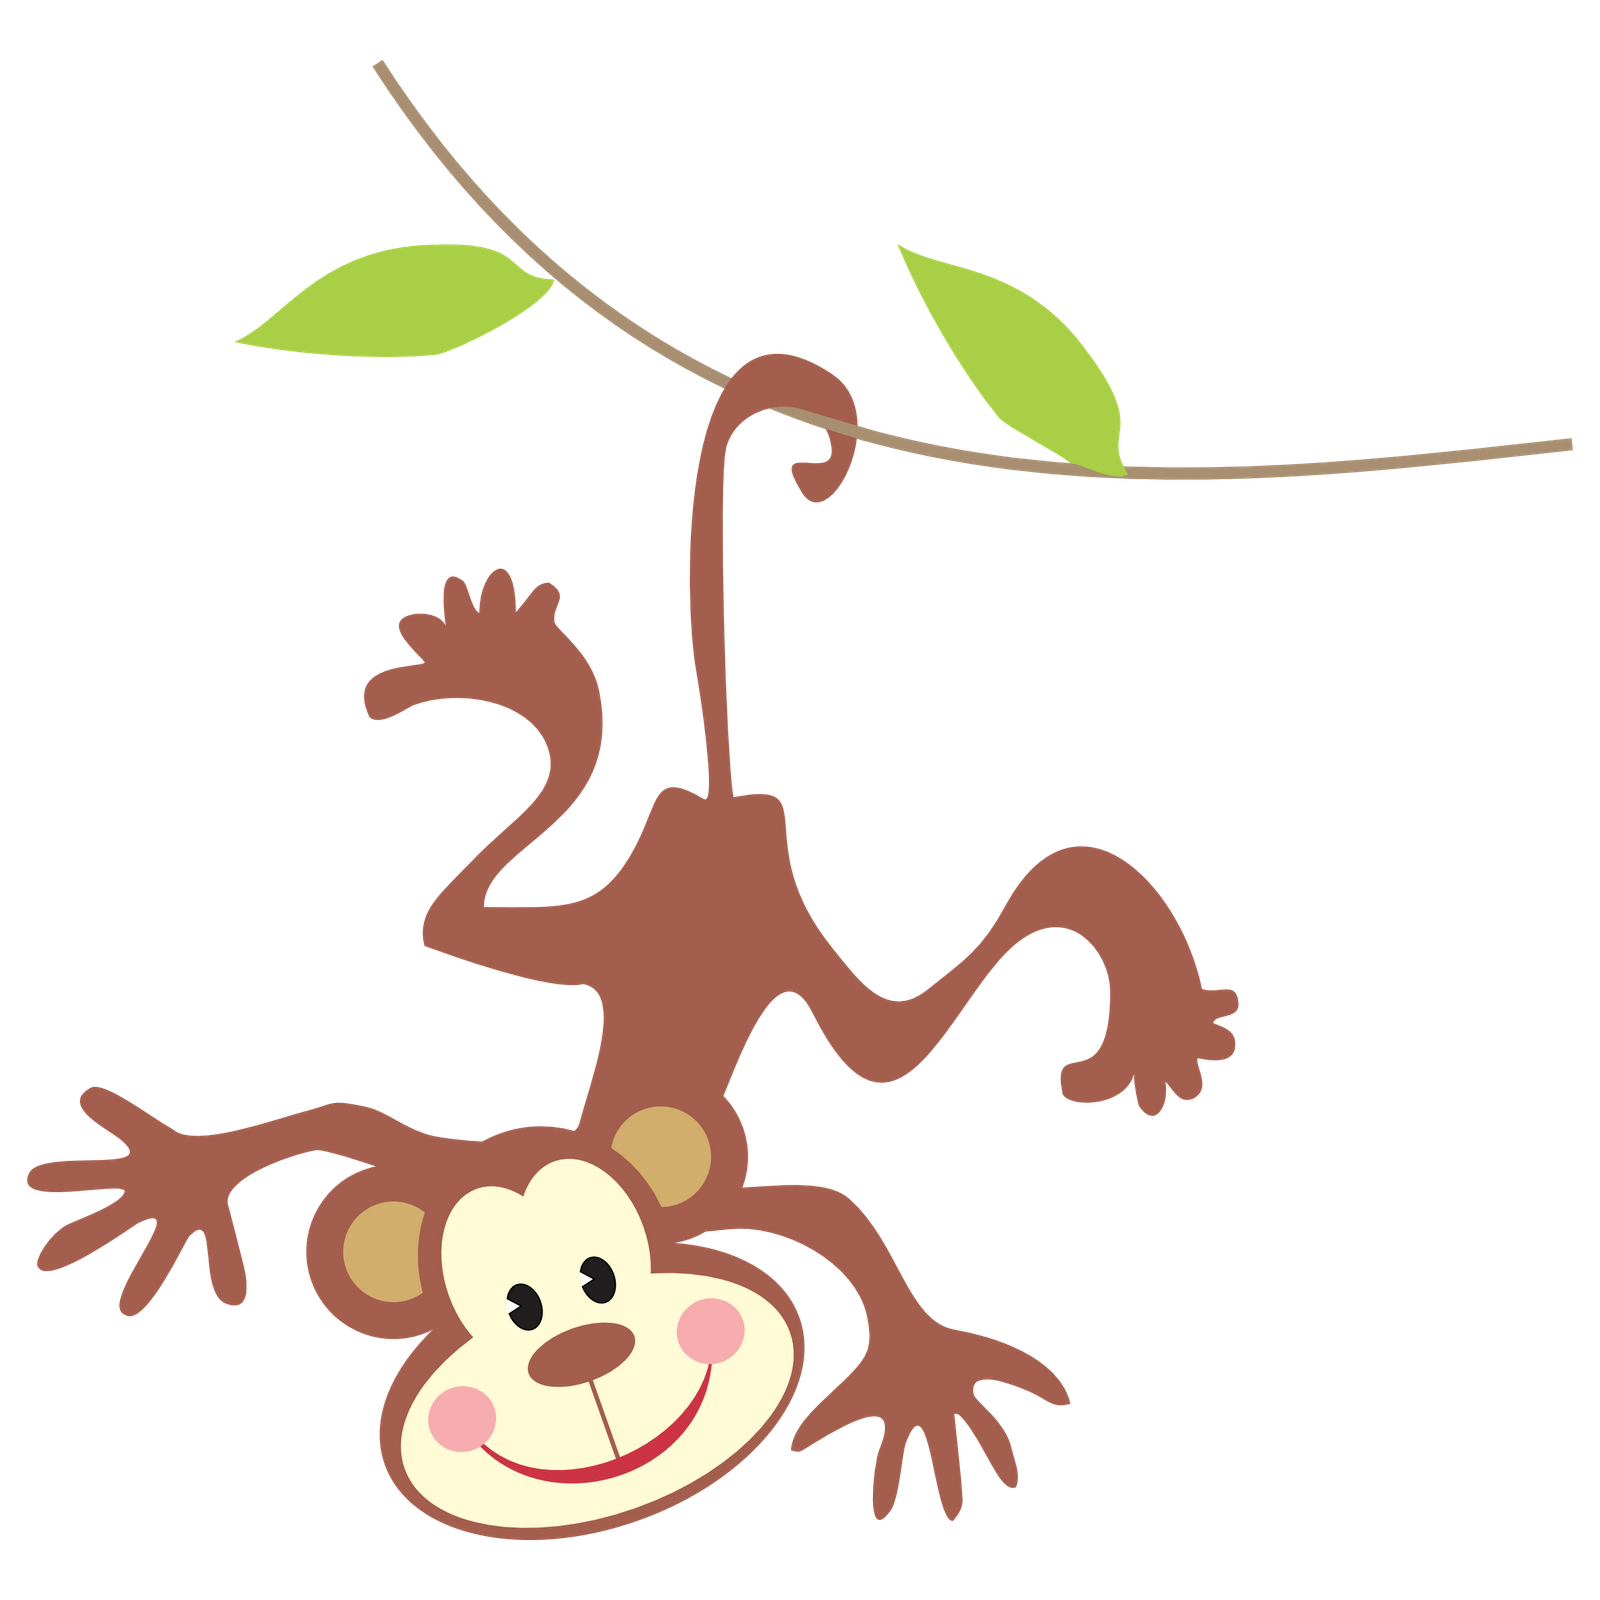 Gallery free clipart picture fruit png bananas free png cli - Art Monkey Use These Free Images For Your Websites Art Projects Reports